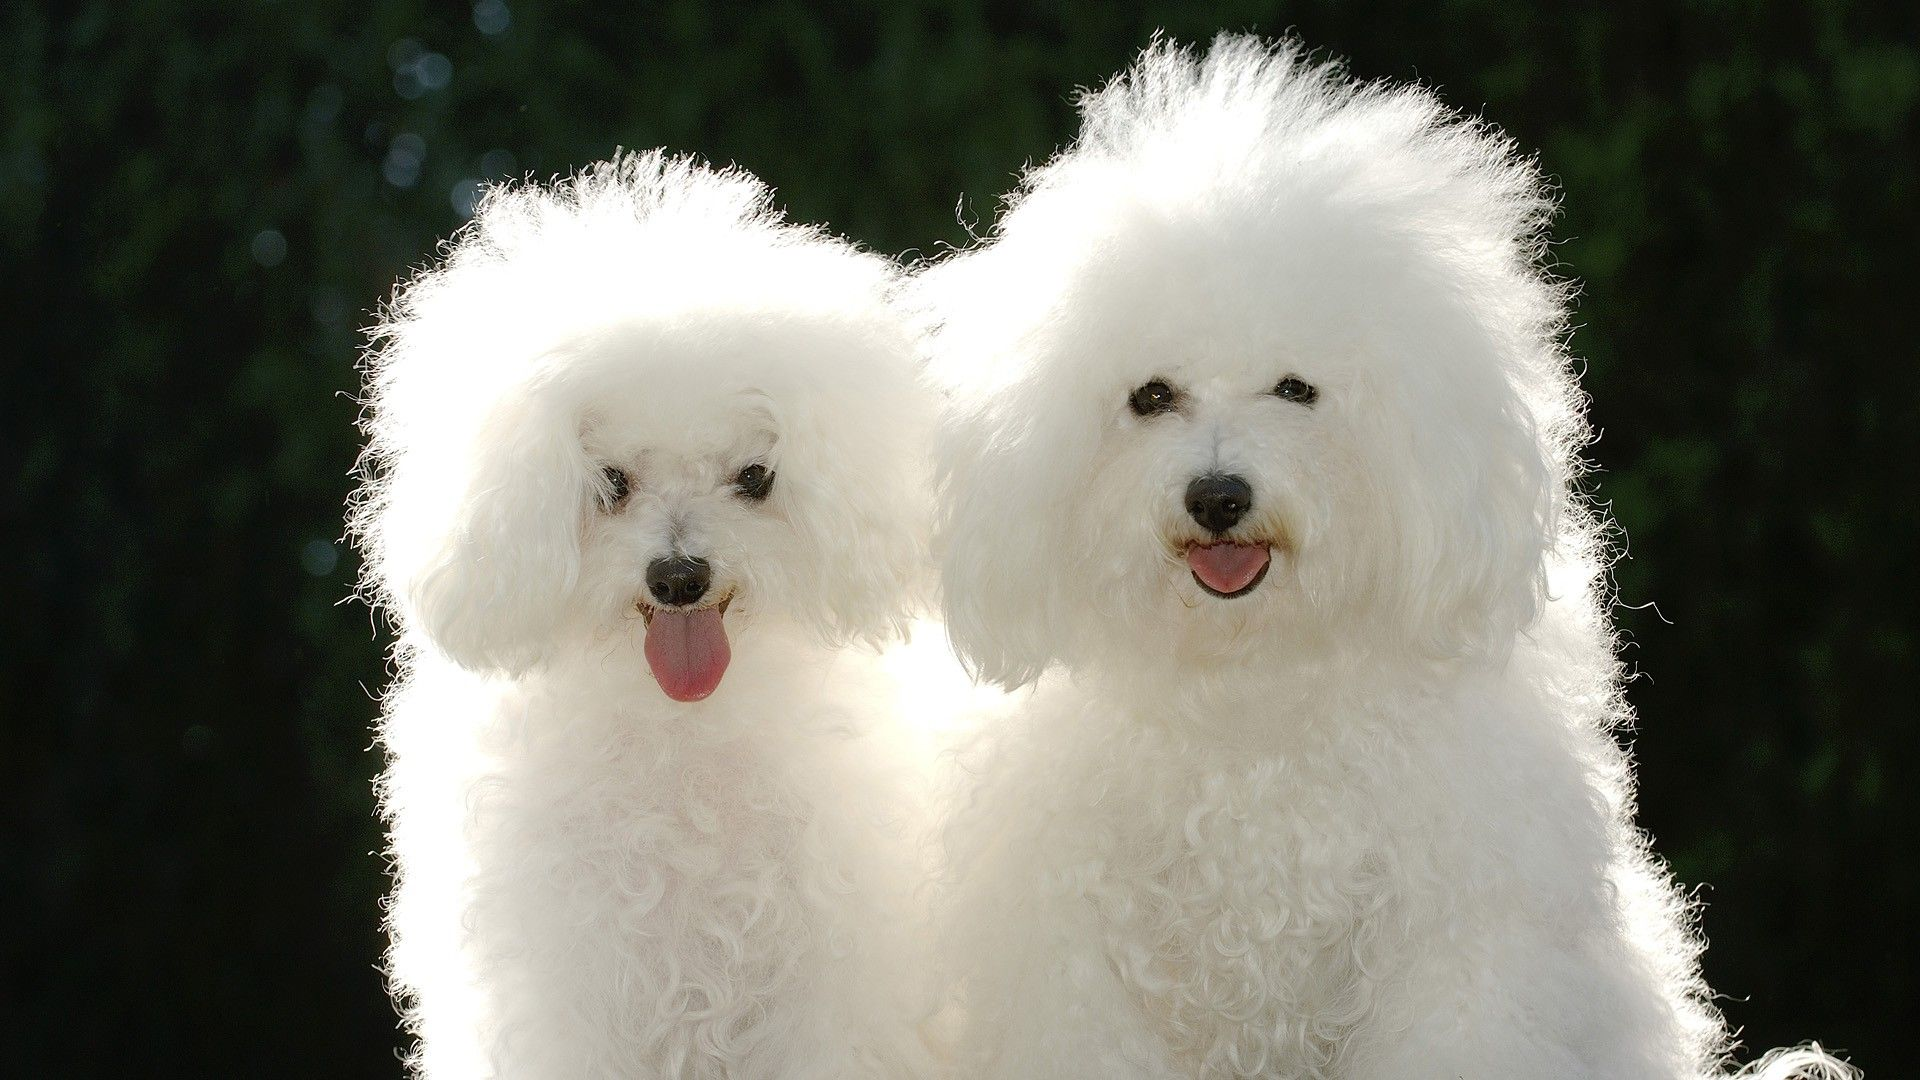 The Poodle is the national dog of which country?